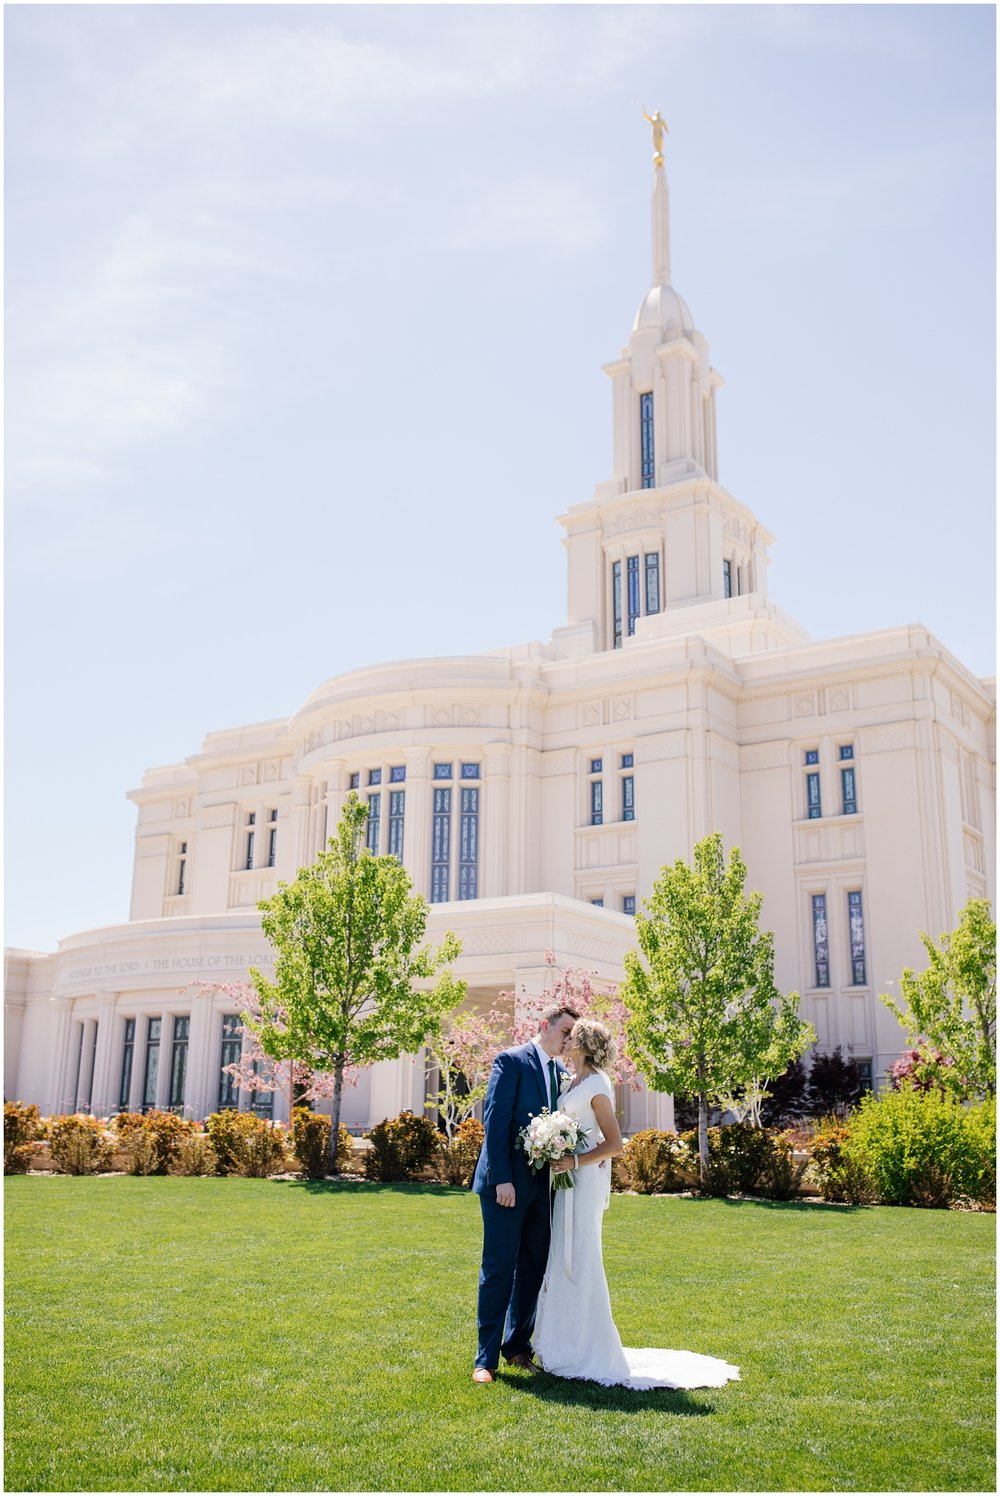 TA-Wedding-125_Lizzie-B-Imagery-Utah-Wedding-Photographer-Park-City-Salt-Lake-City-Thanksgiving-Point-Ashton-Gardens-Lehi-Utah.jpg